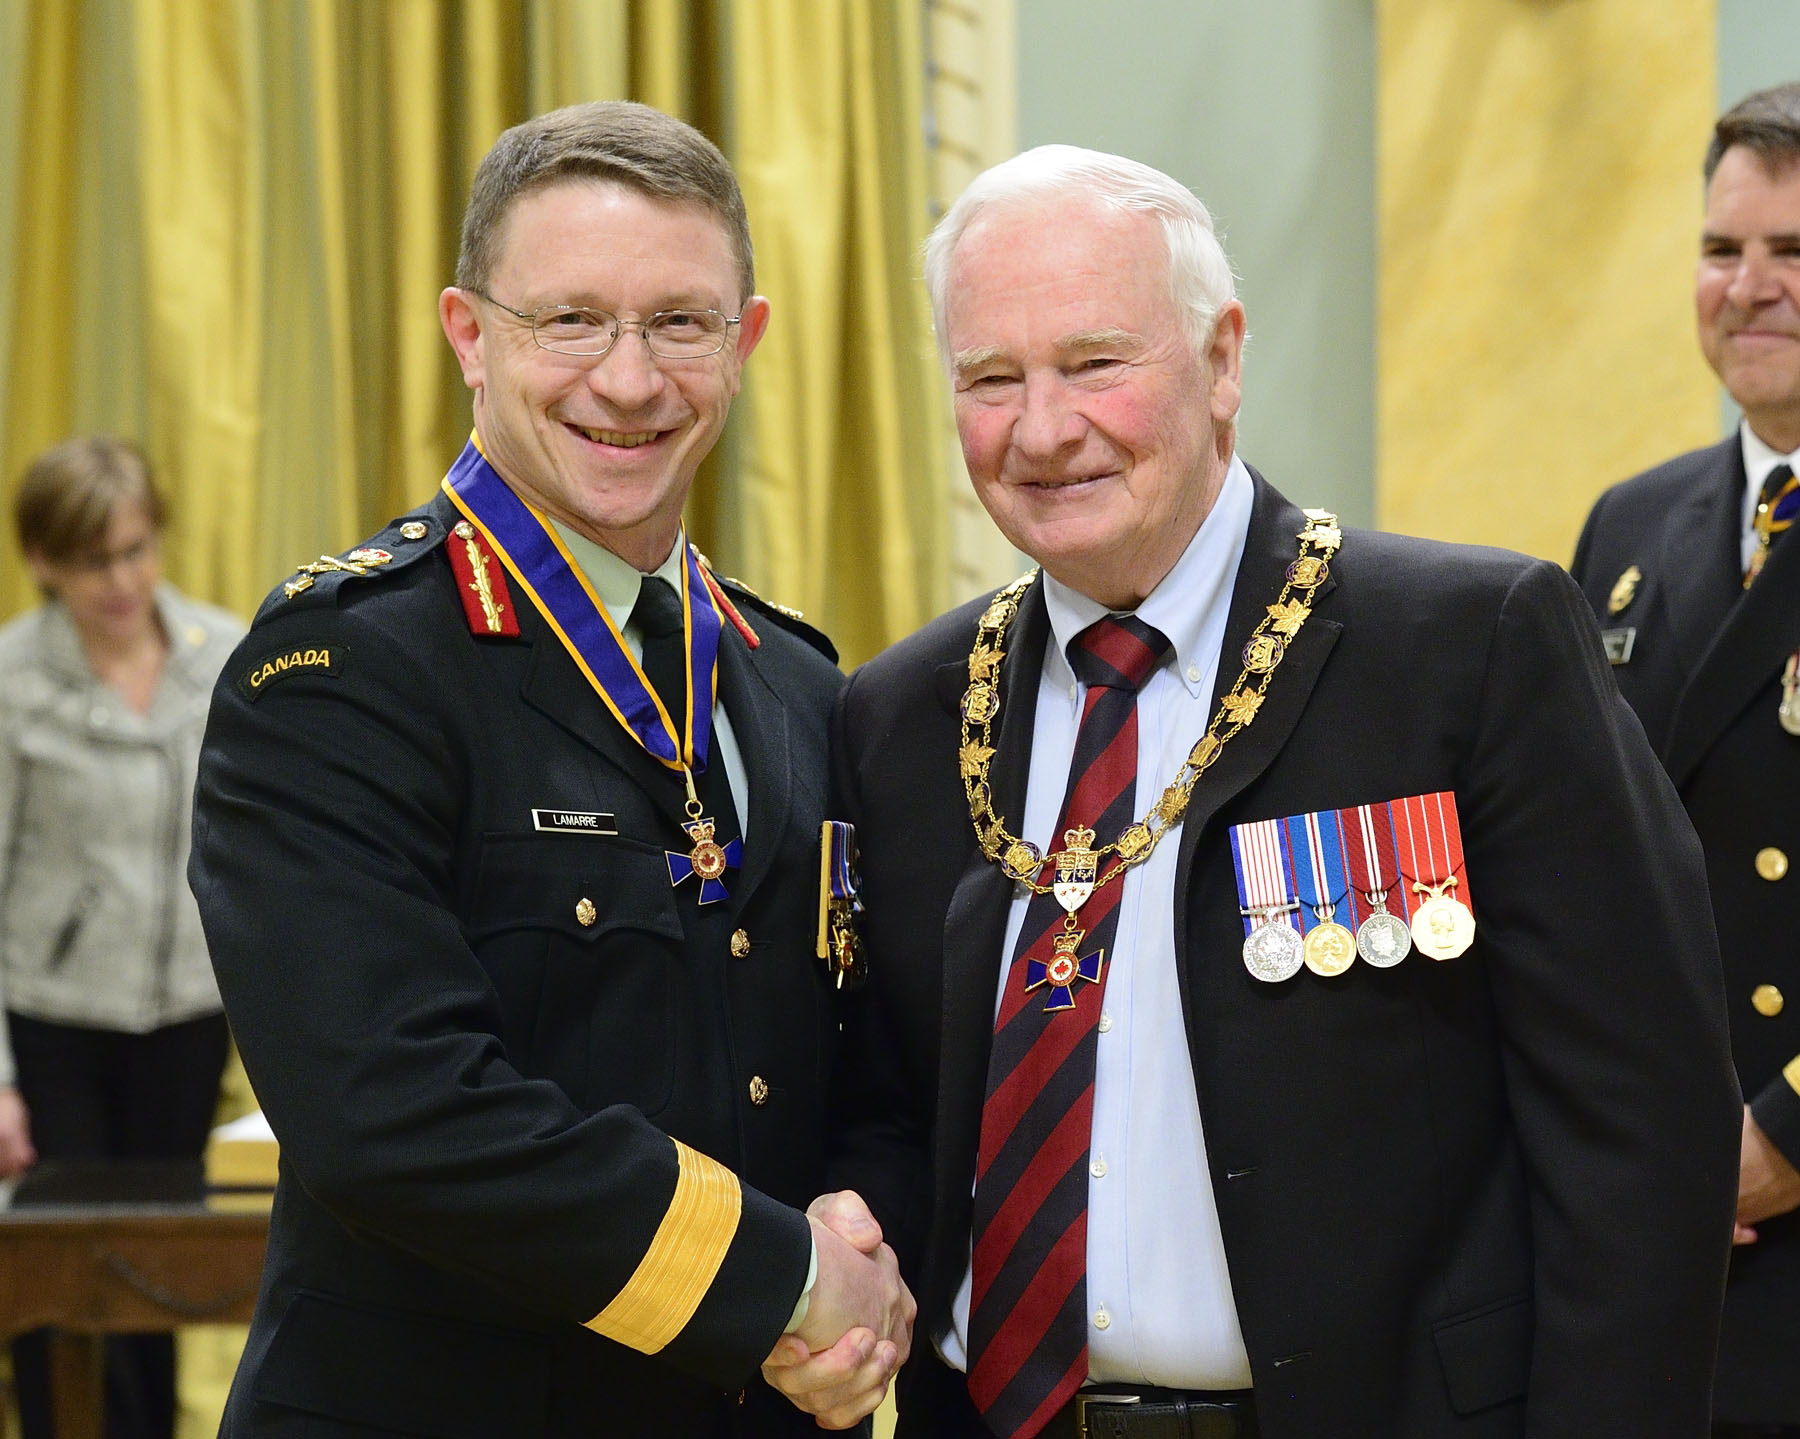 His Excellency presented the Order of Military Merit at the Commander level (C.M.M.) to Major-General Charles Adrien Lamarre, C.M.M., M.S.C., C.D., from Strategic Joint Staff in Ottawa, Ontario.